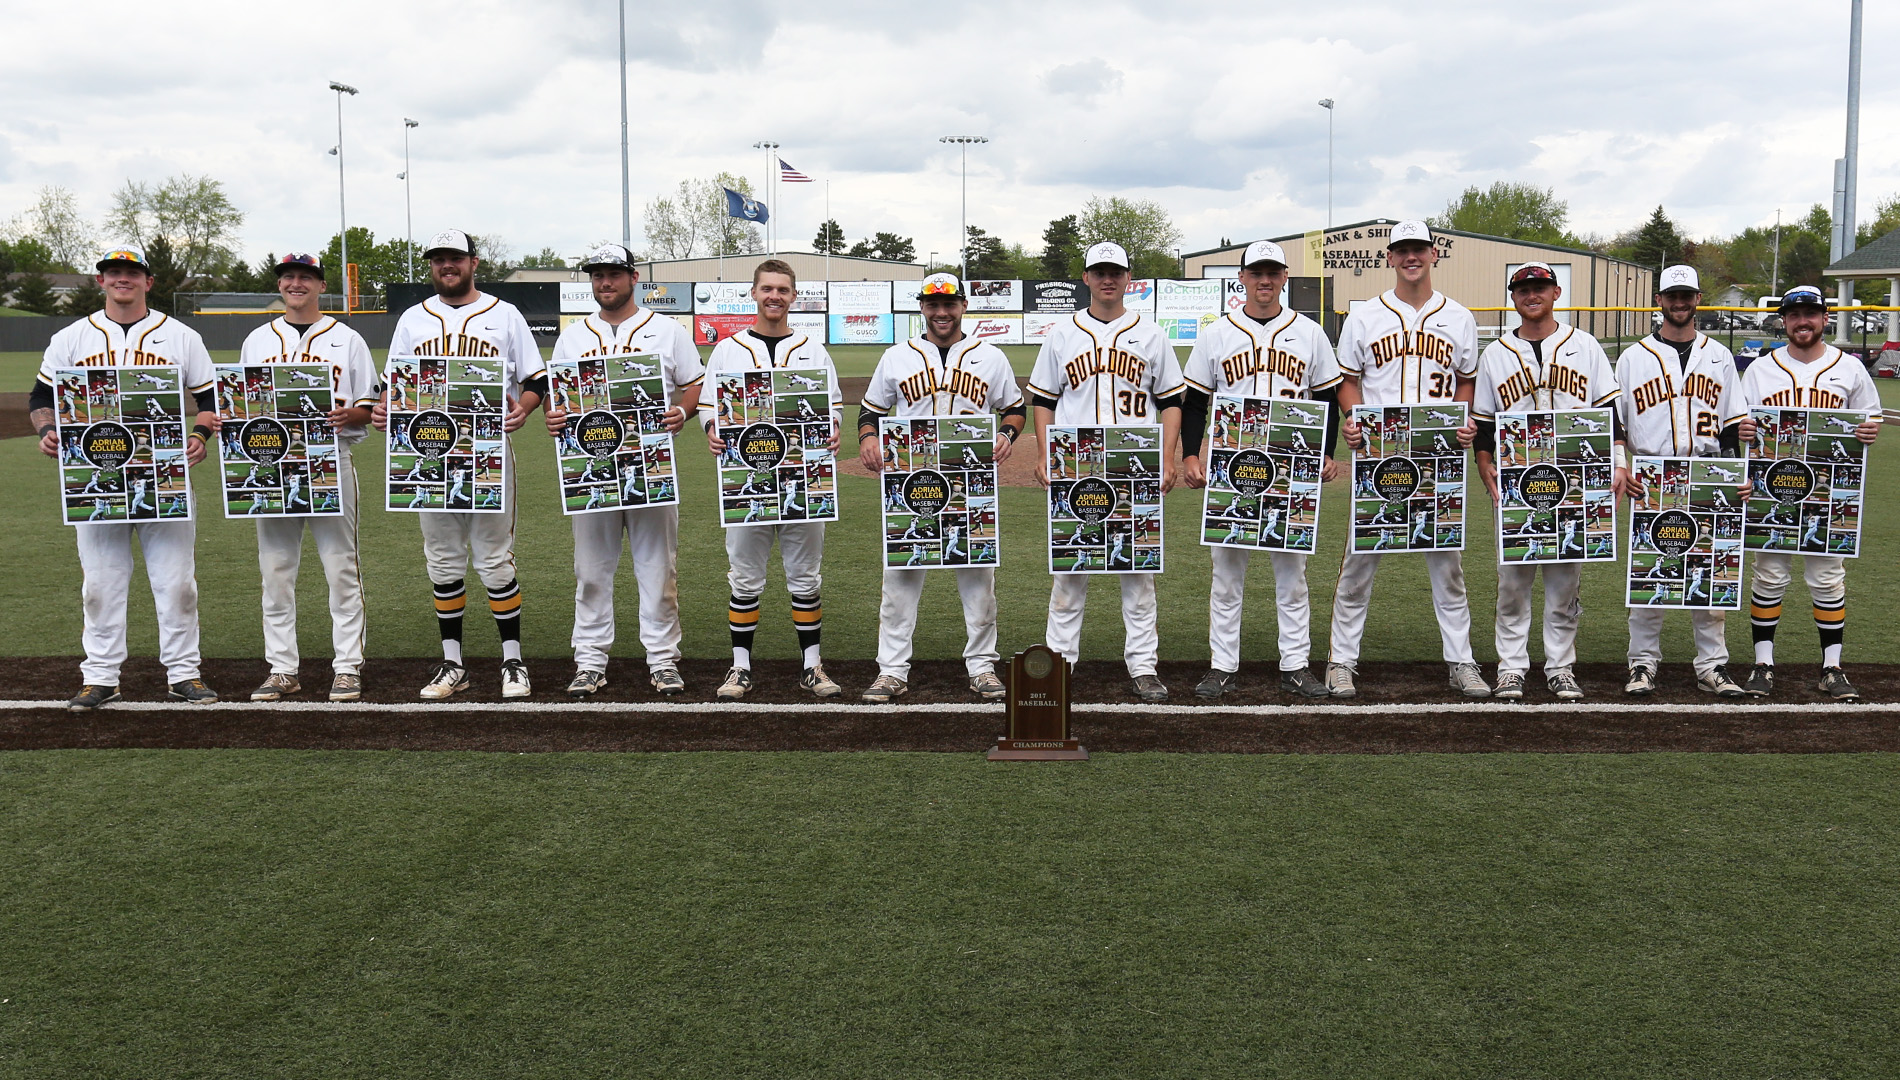 The 2017 Adrian College baseball senior class was honored between games in Saturday's doubleheader versus Hope College. (Photo by Mike Dickie)